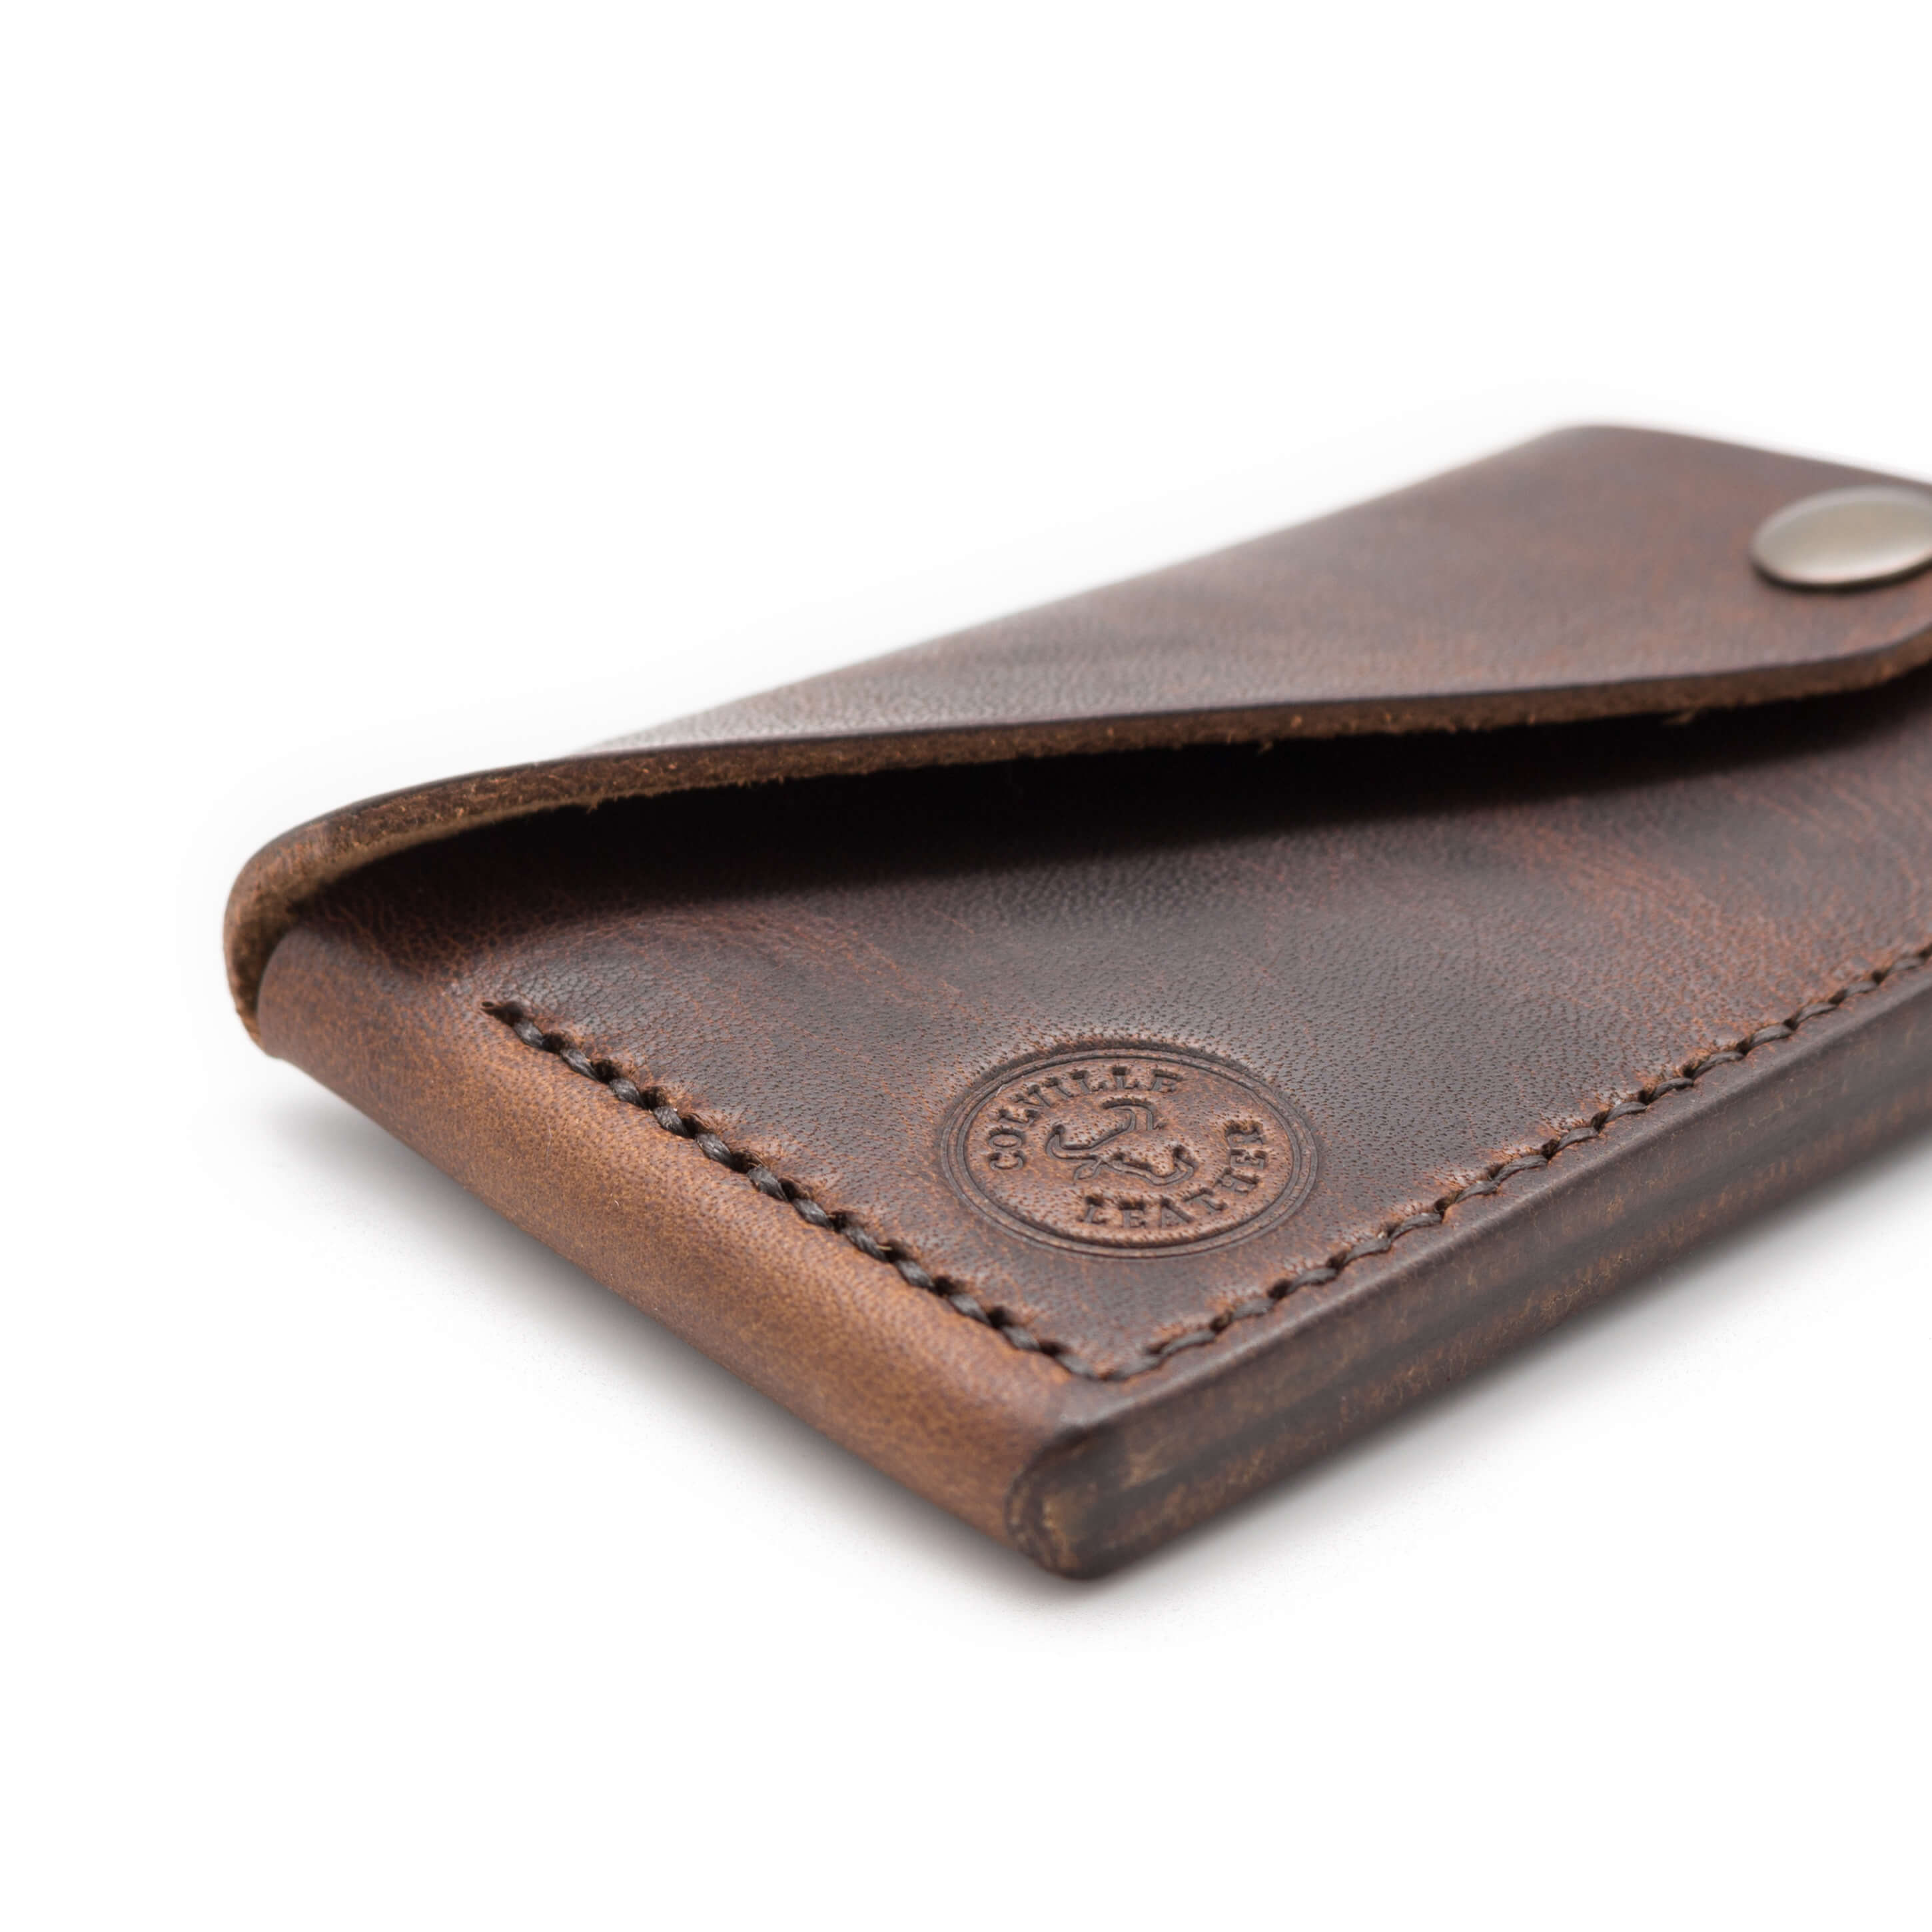 Handmade leather wallet in Horween Leather